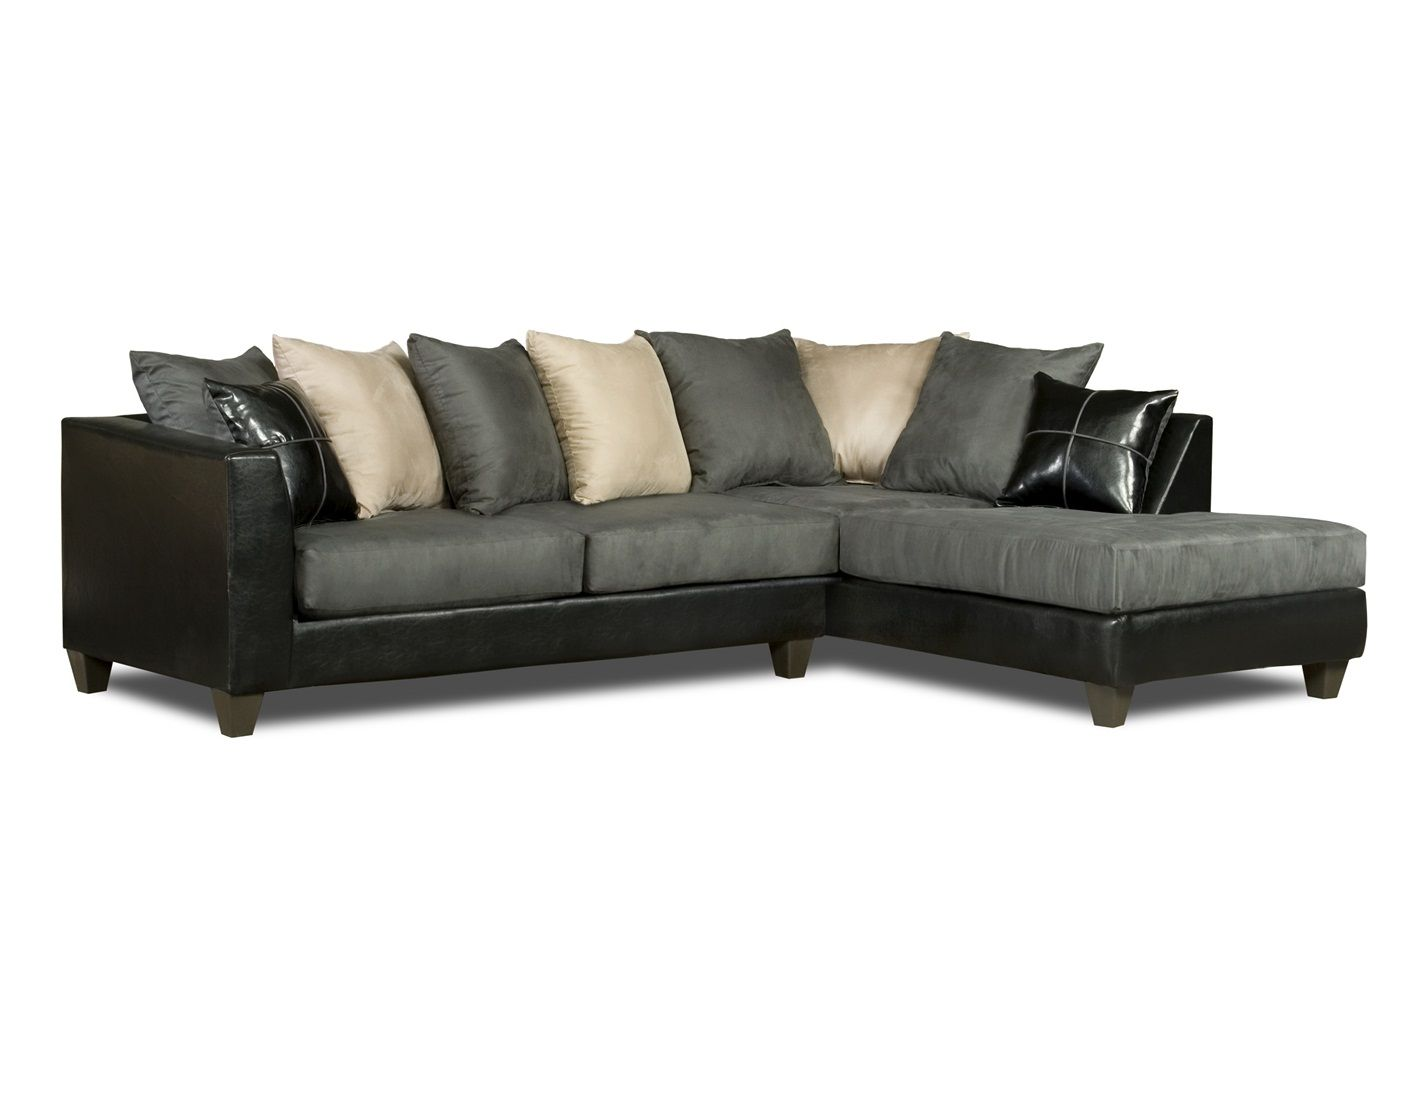 Black Gray White Sectional Sofa Loose Pillow Back 4185 Price